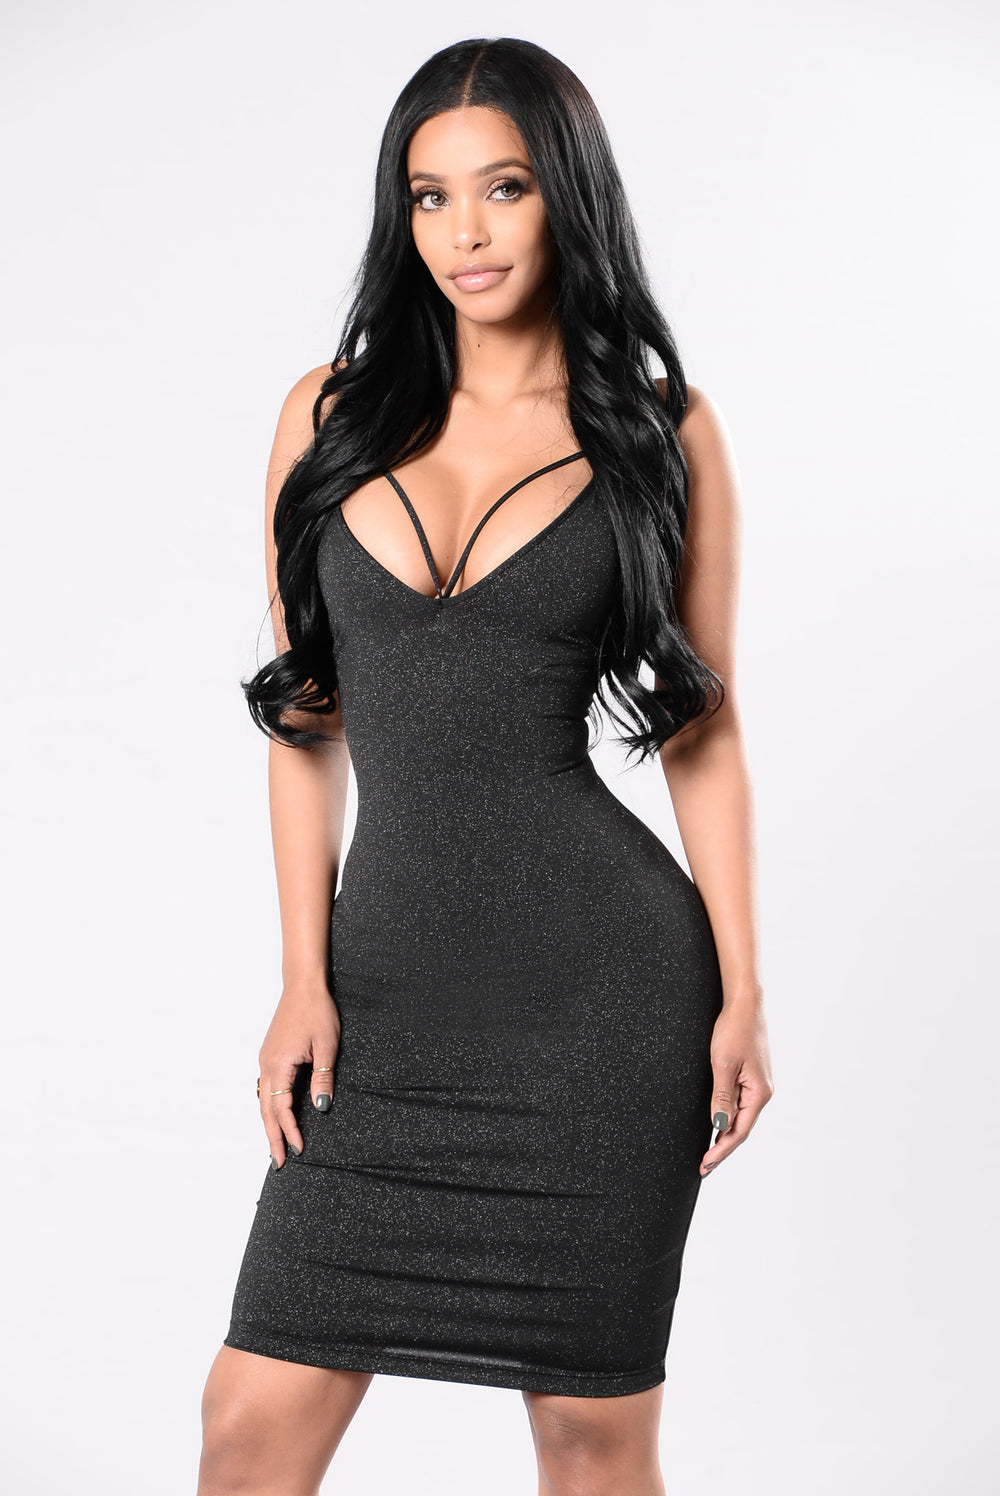 A Little Glitter Dress - Black